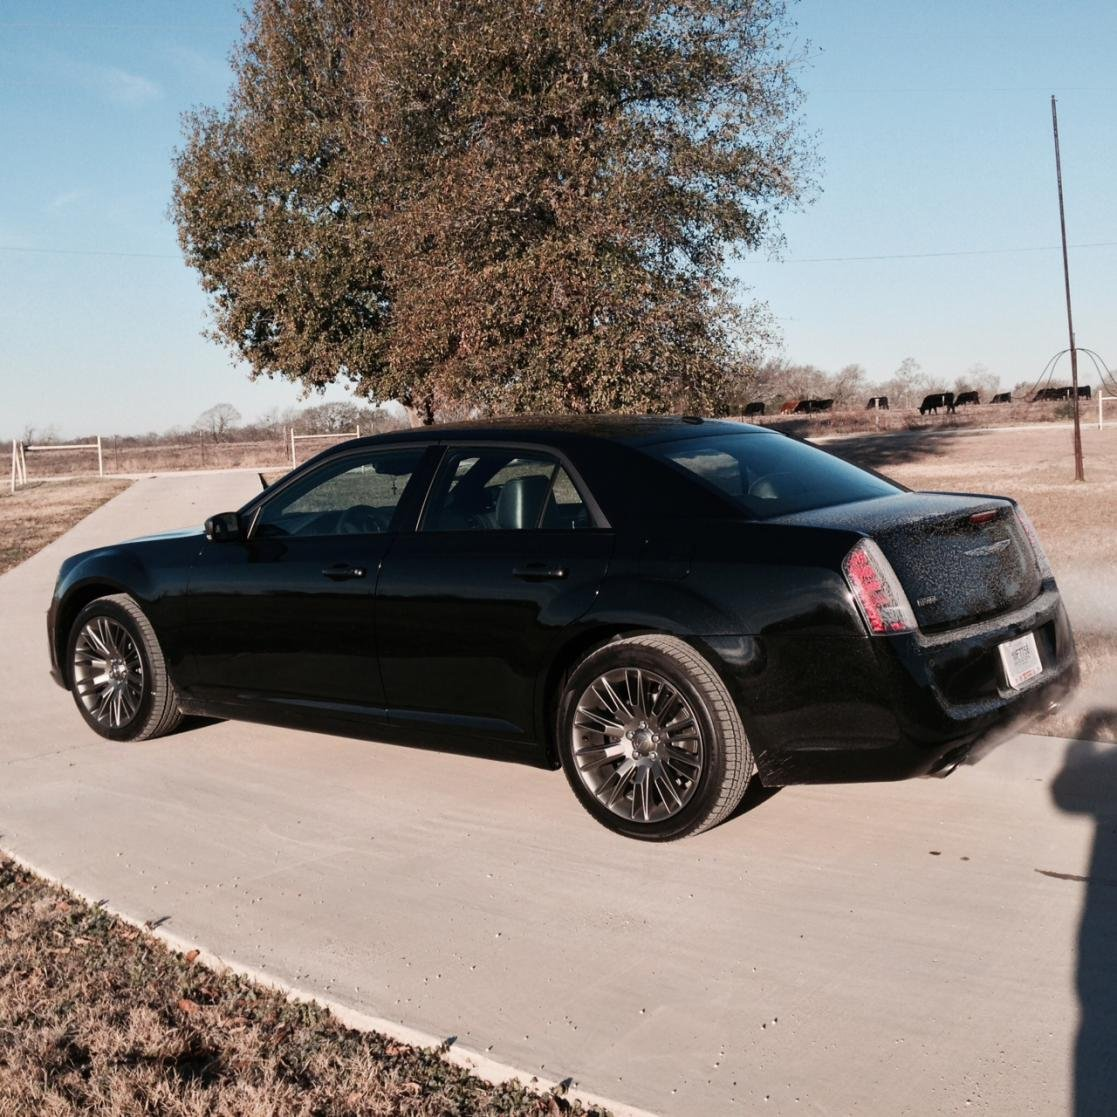 Chrysler 300c Forum 300c: Black Vapor (Black Chrome) Rims?!?!